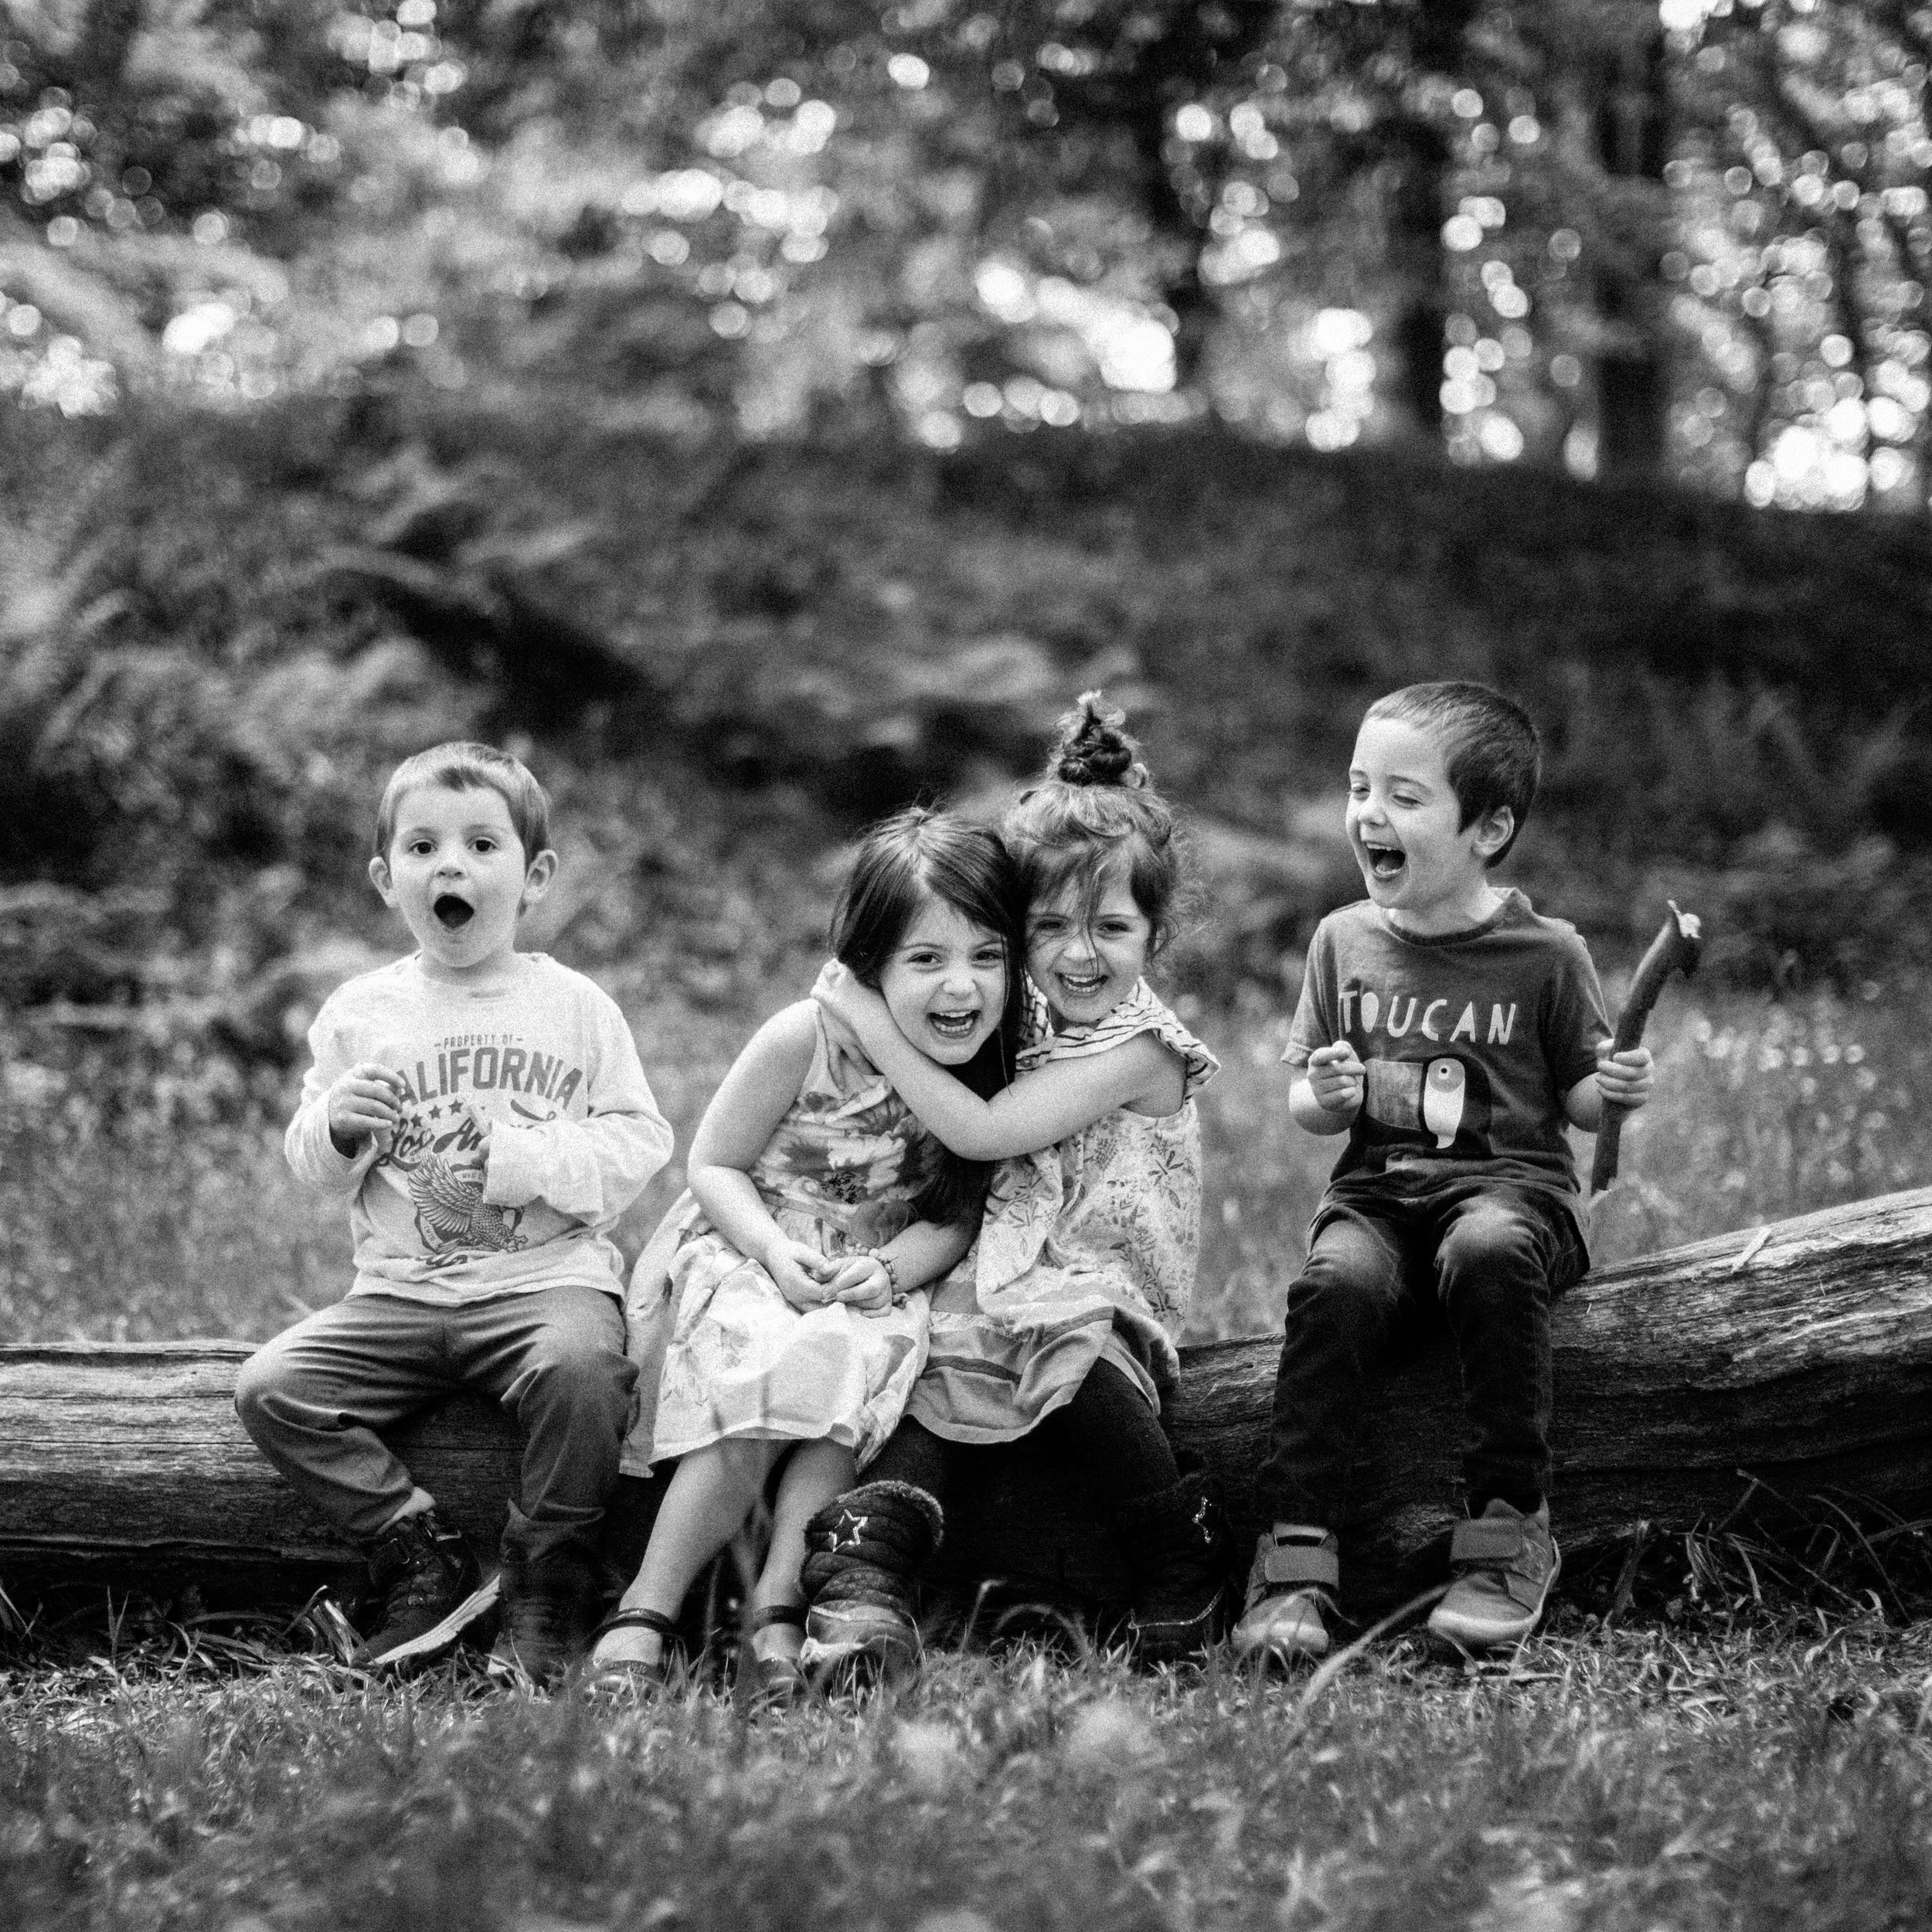 My children - Zach with triplet siblings Sienna, Summer and Jacob - having fun on a shoot is the most important thing!